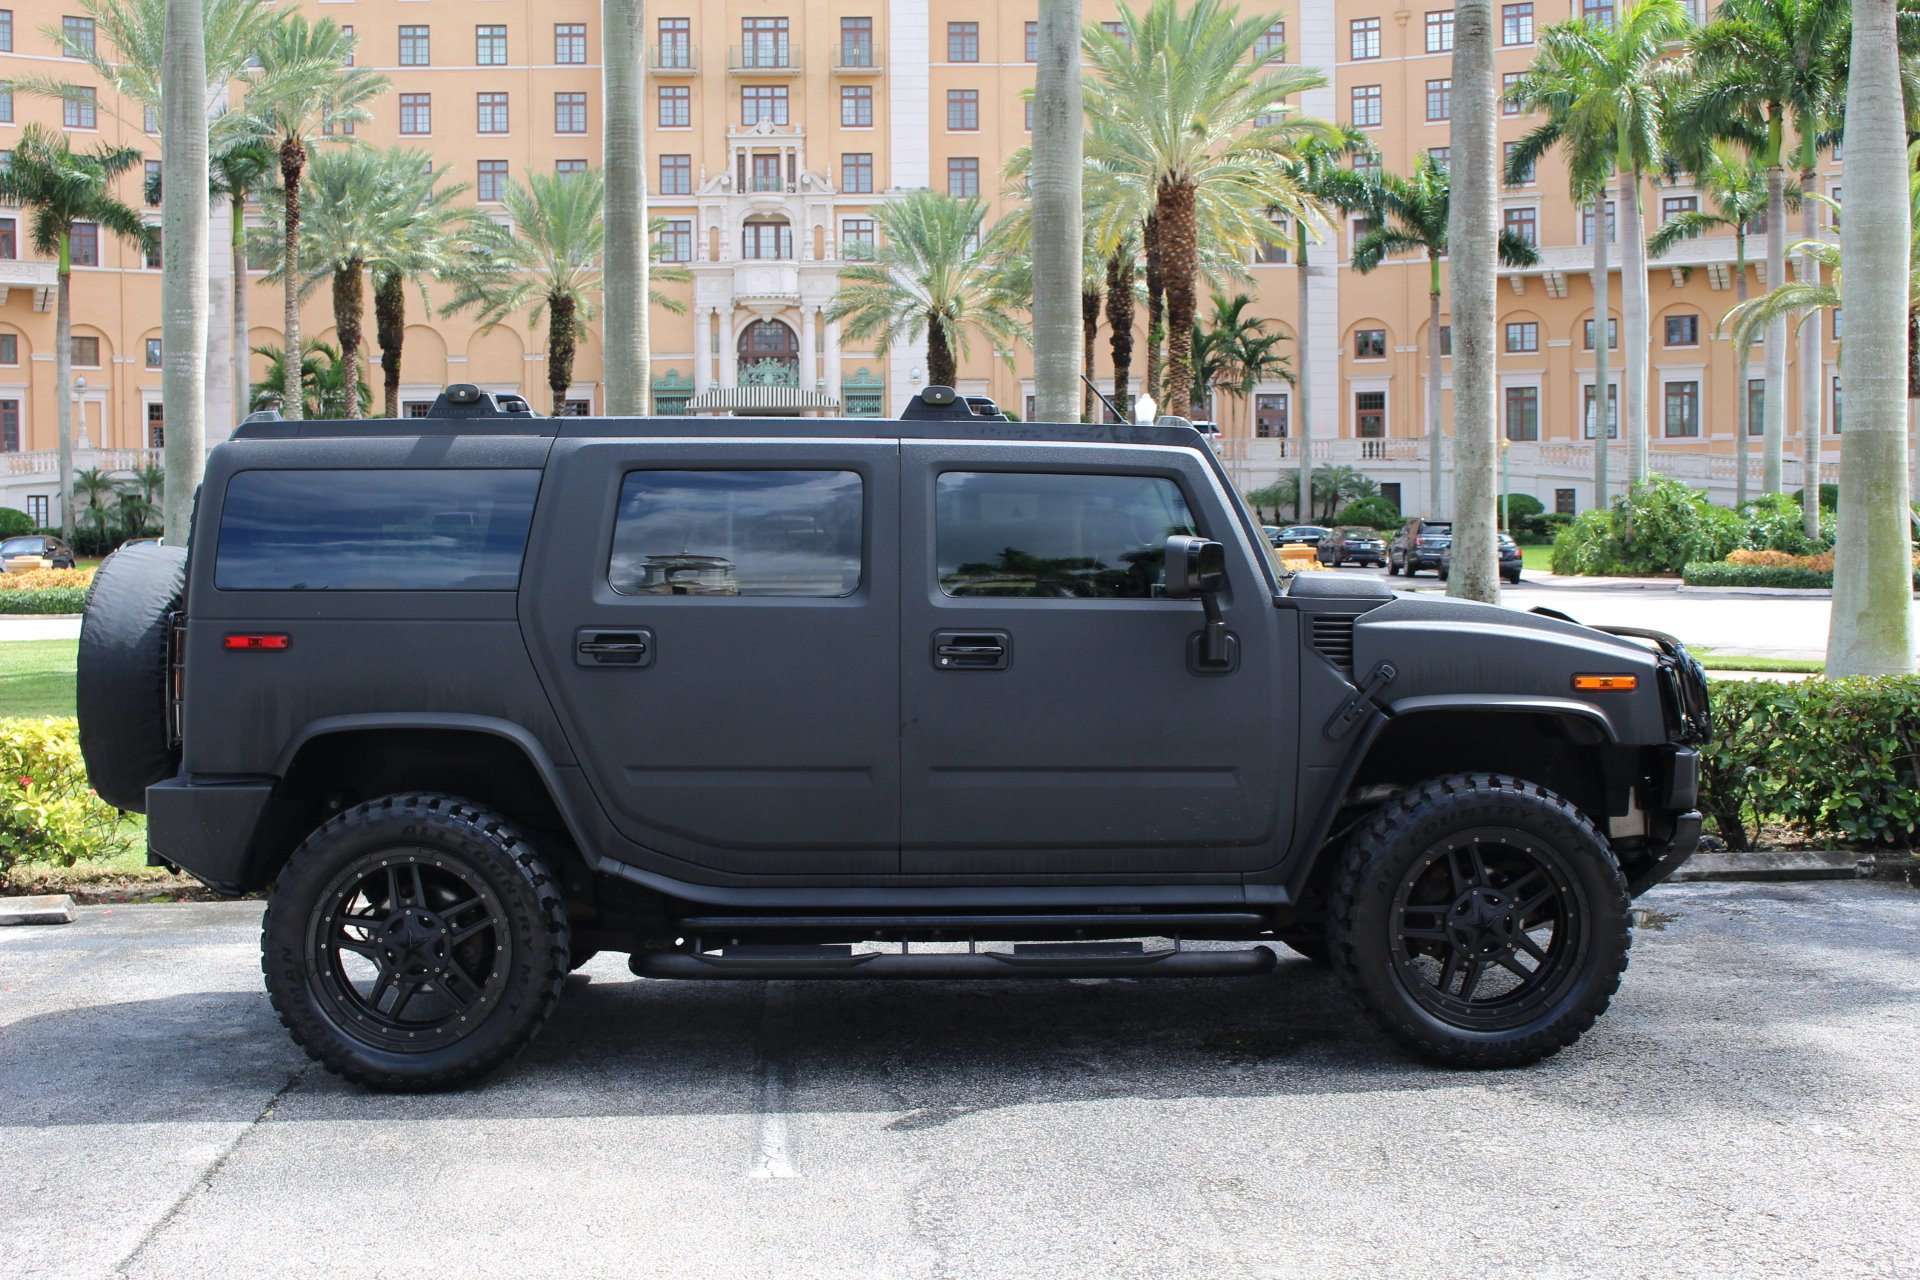 Used 2003 HUMMER H2 Lux Series for sale Sold at The Gables Sports Cars in Miami FL 33146 2